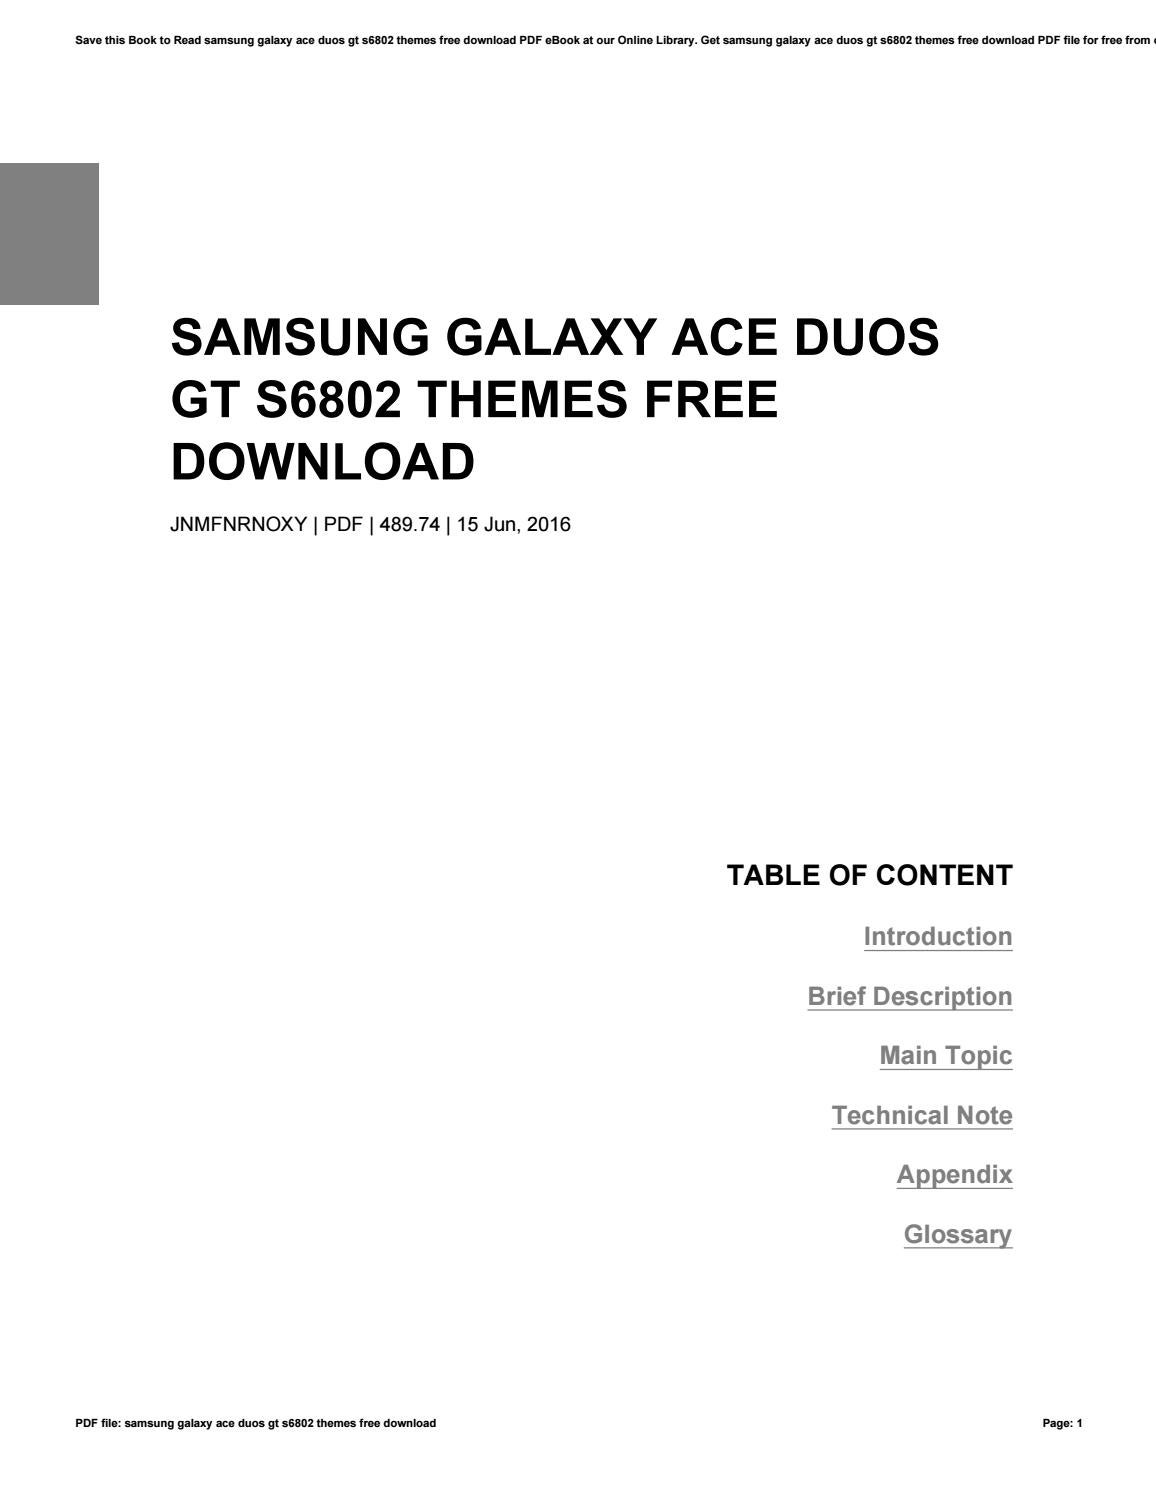 Samsung galaxy ace duos gt s6802 themes free download by